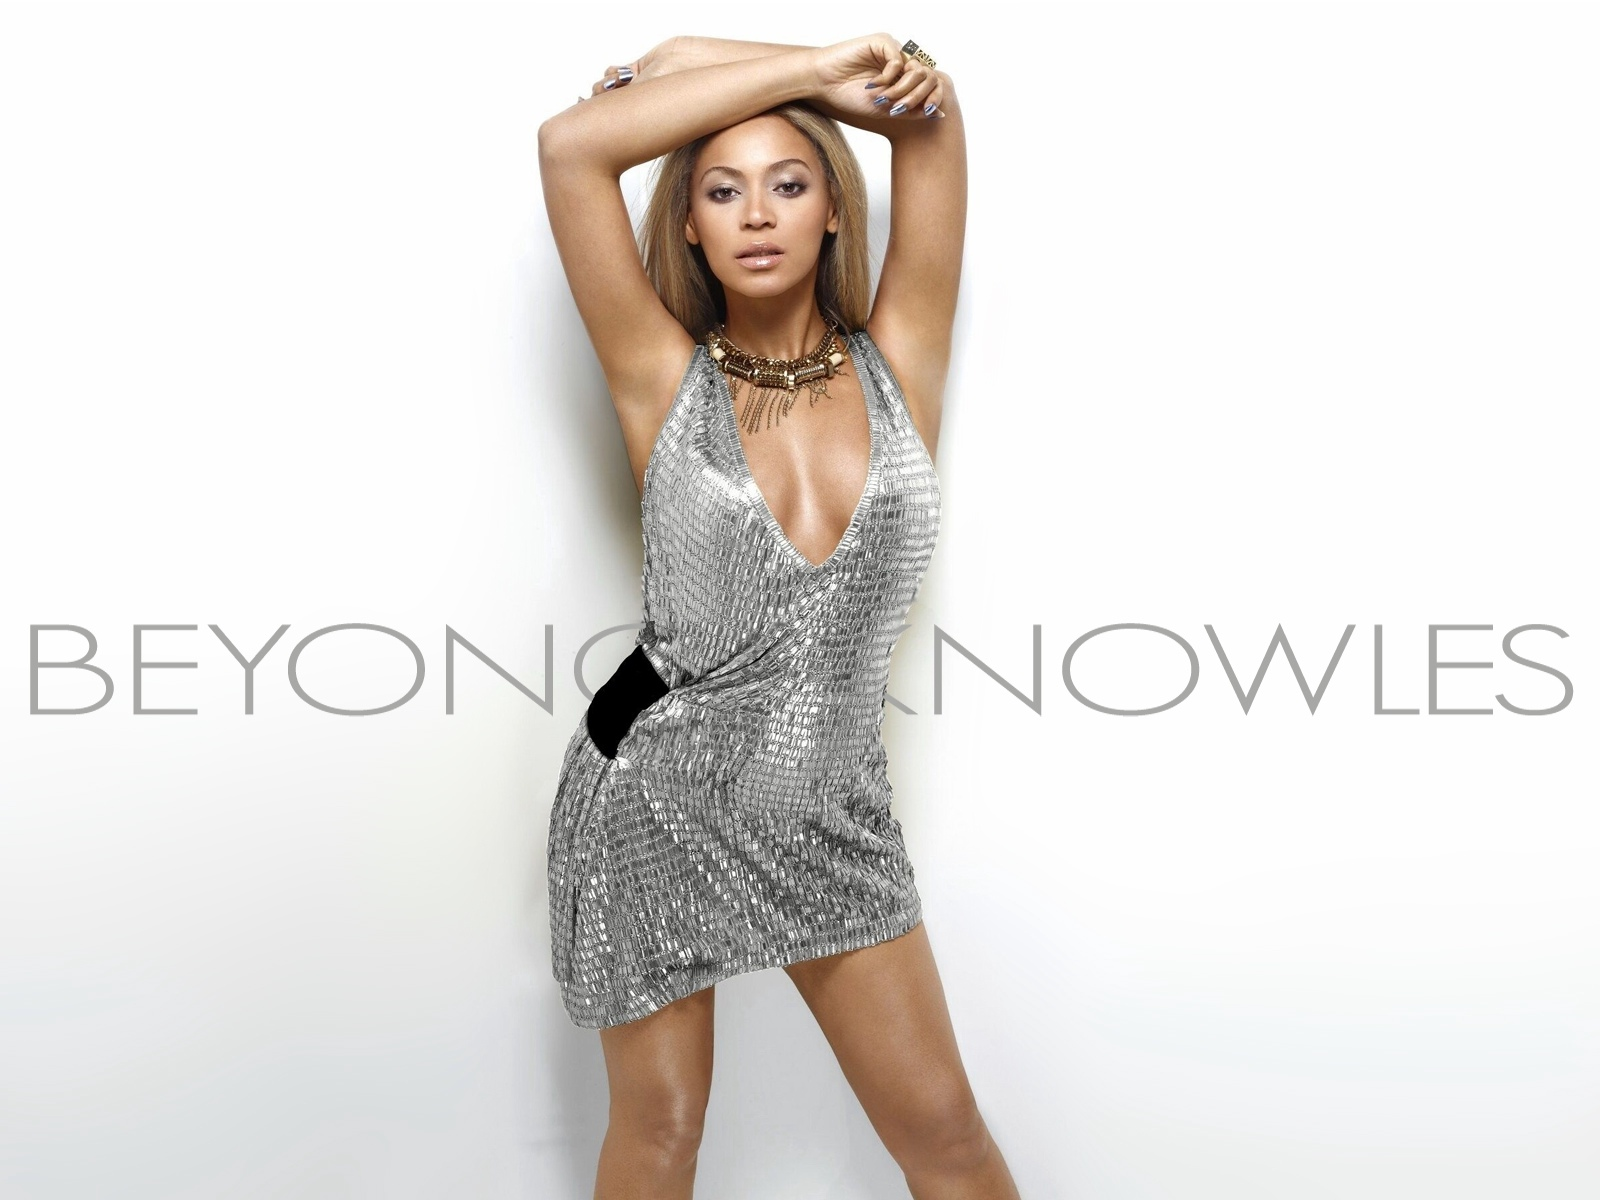 Beyonce images Beyonce HD wallpaper and background photos 1600x1200